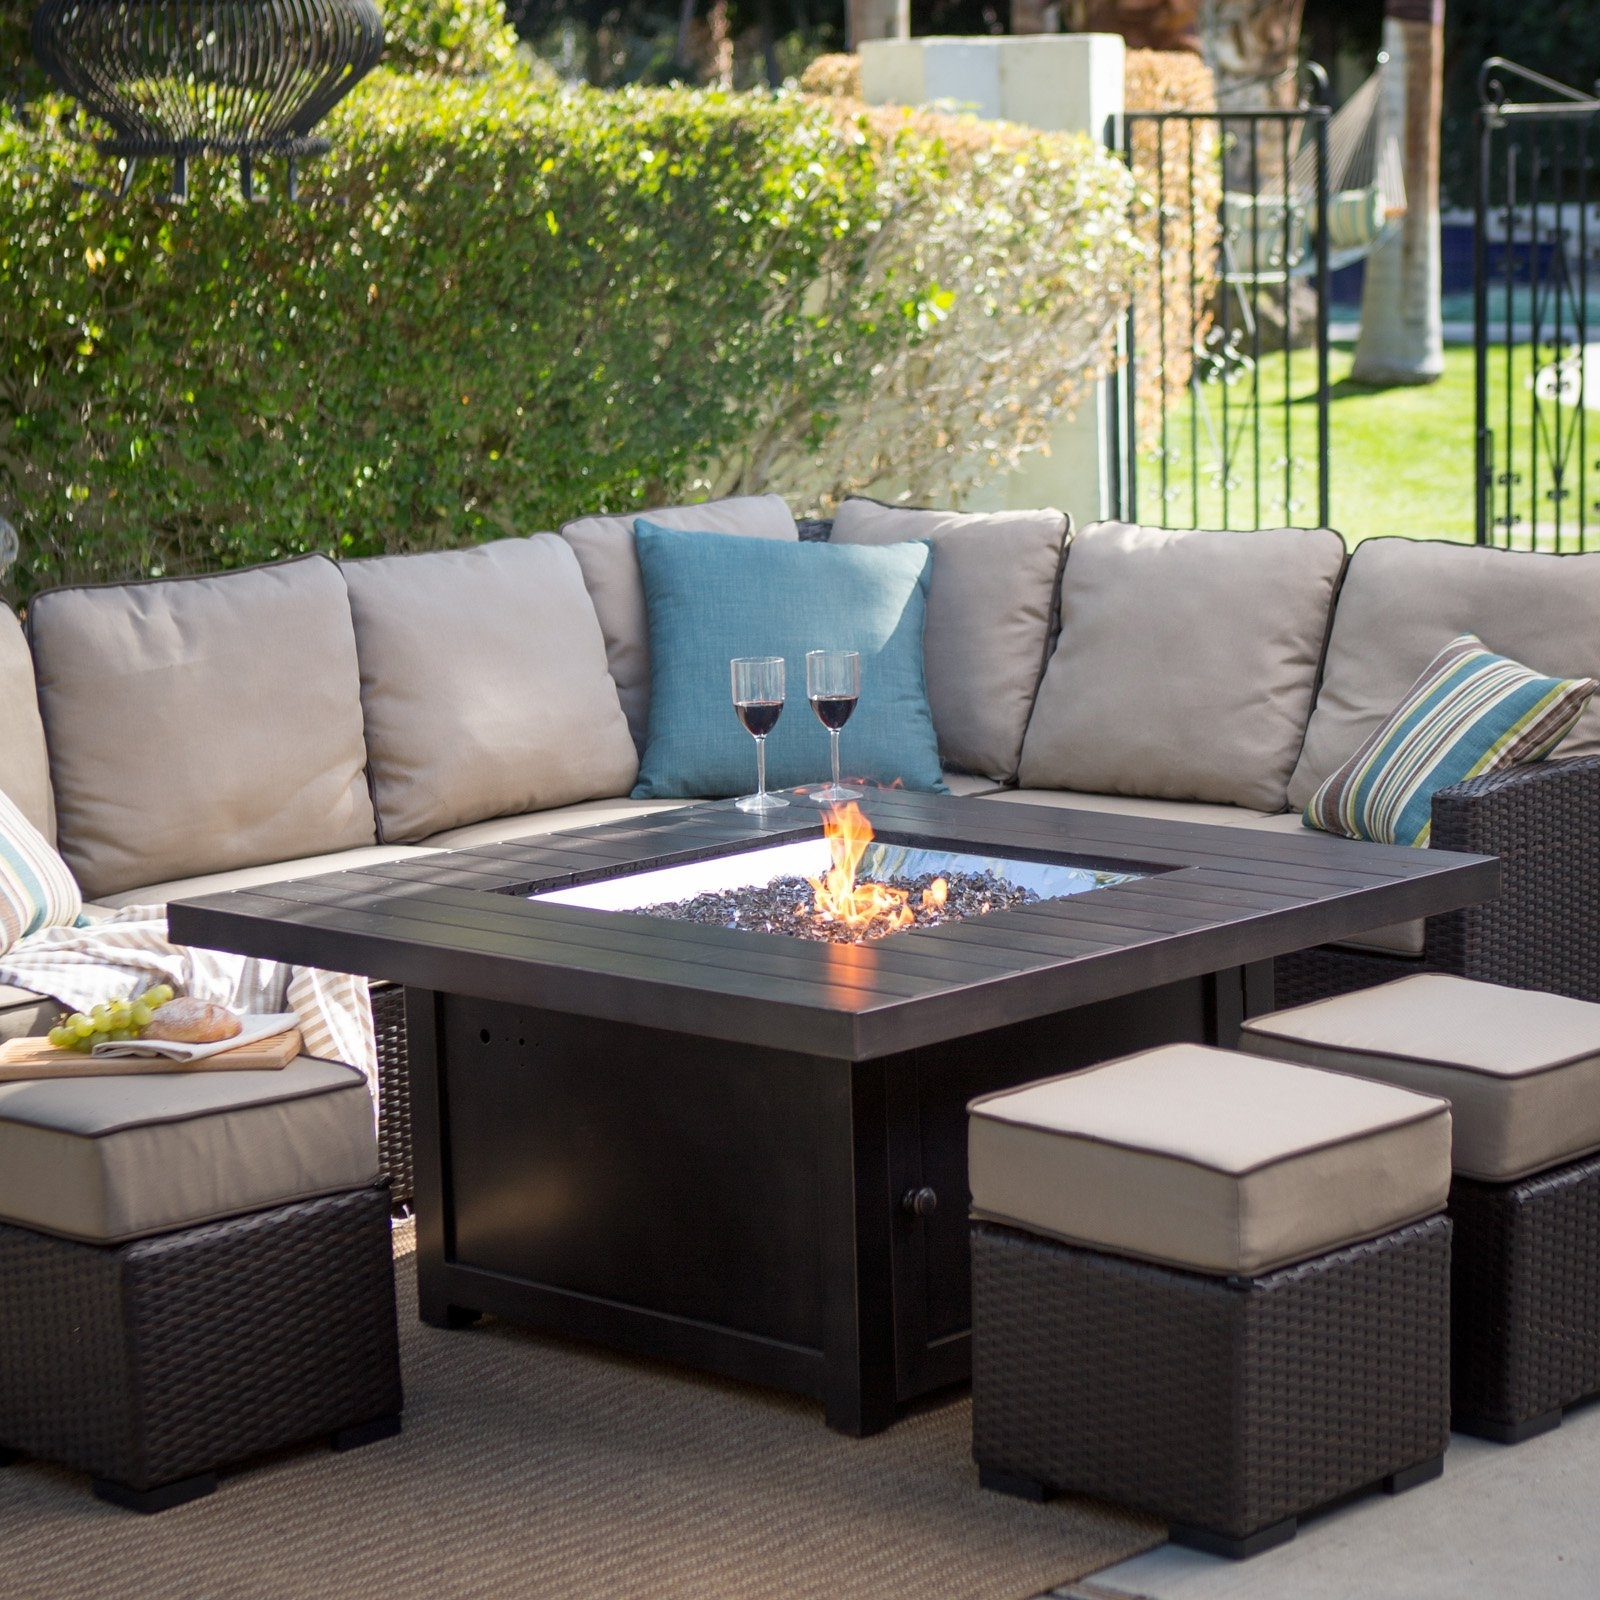 Patio Conversation Sets With Fire Table Within Newest Furniture: High Quality Patio Furniture Columbus Ohio And Fire Pit (View 7 of 20)